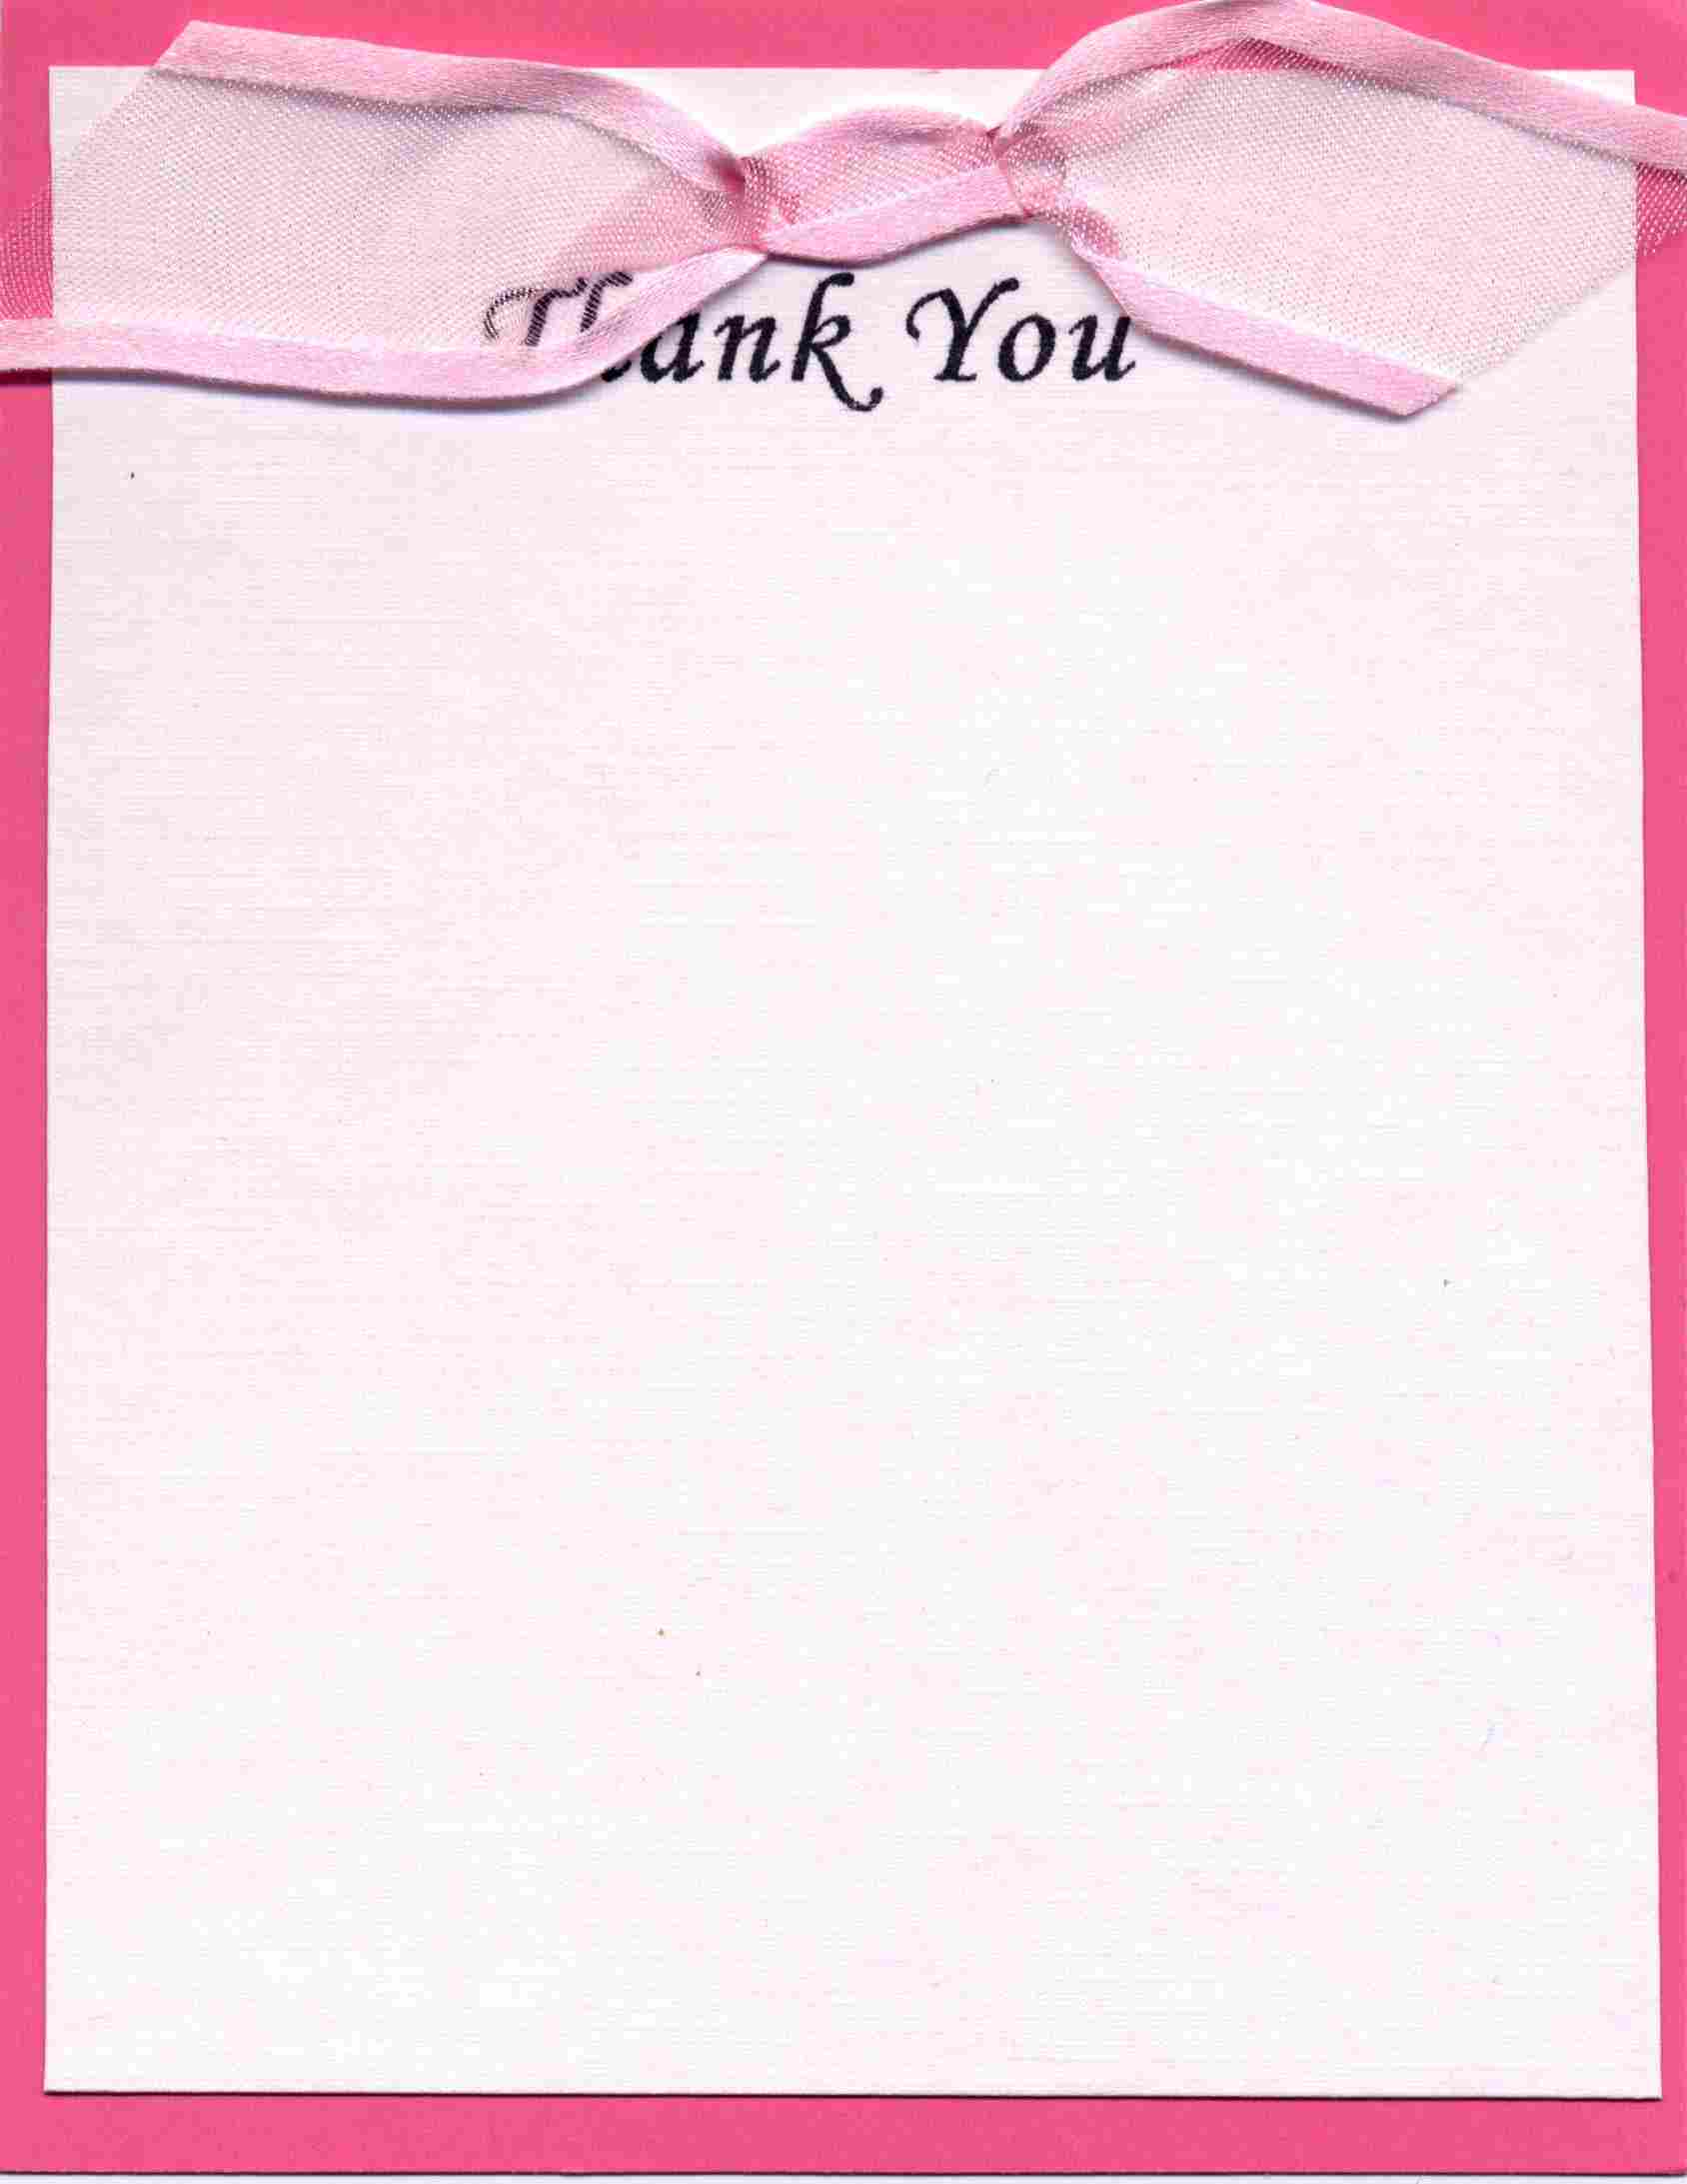 This thank you note is designed to be consistent with the invitations ...